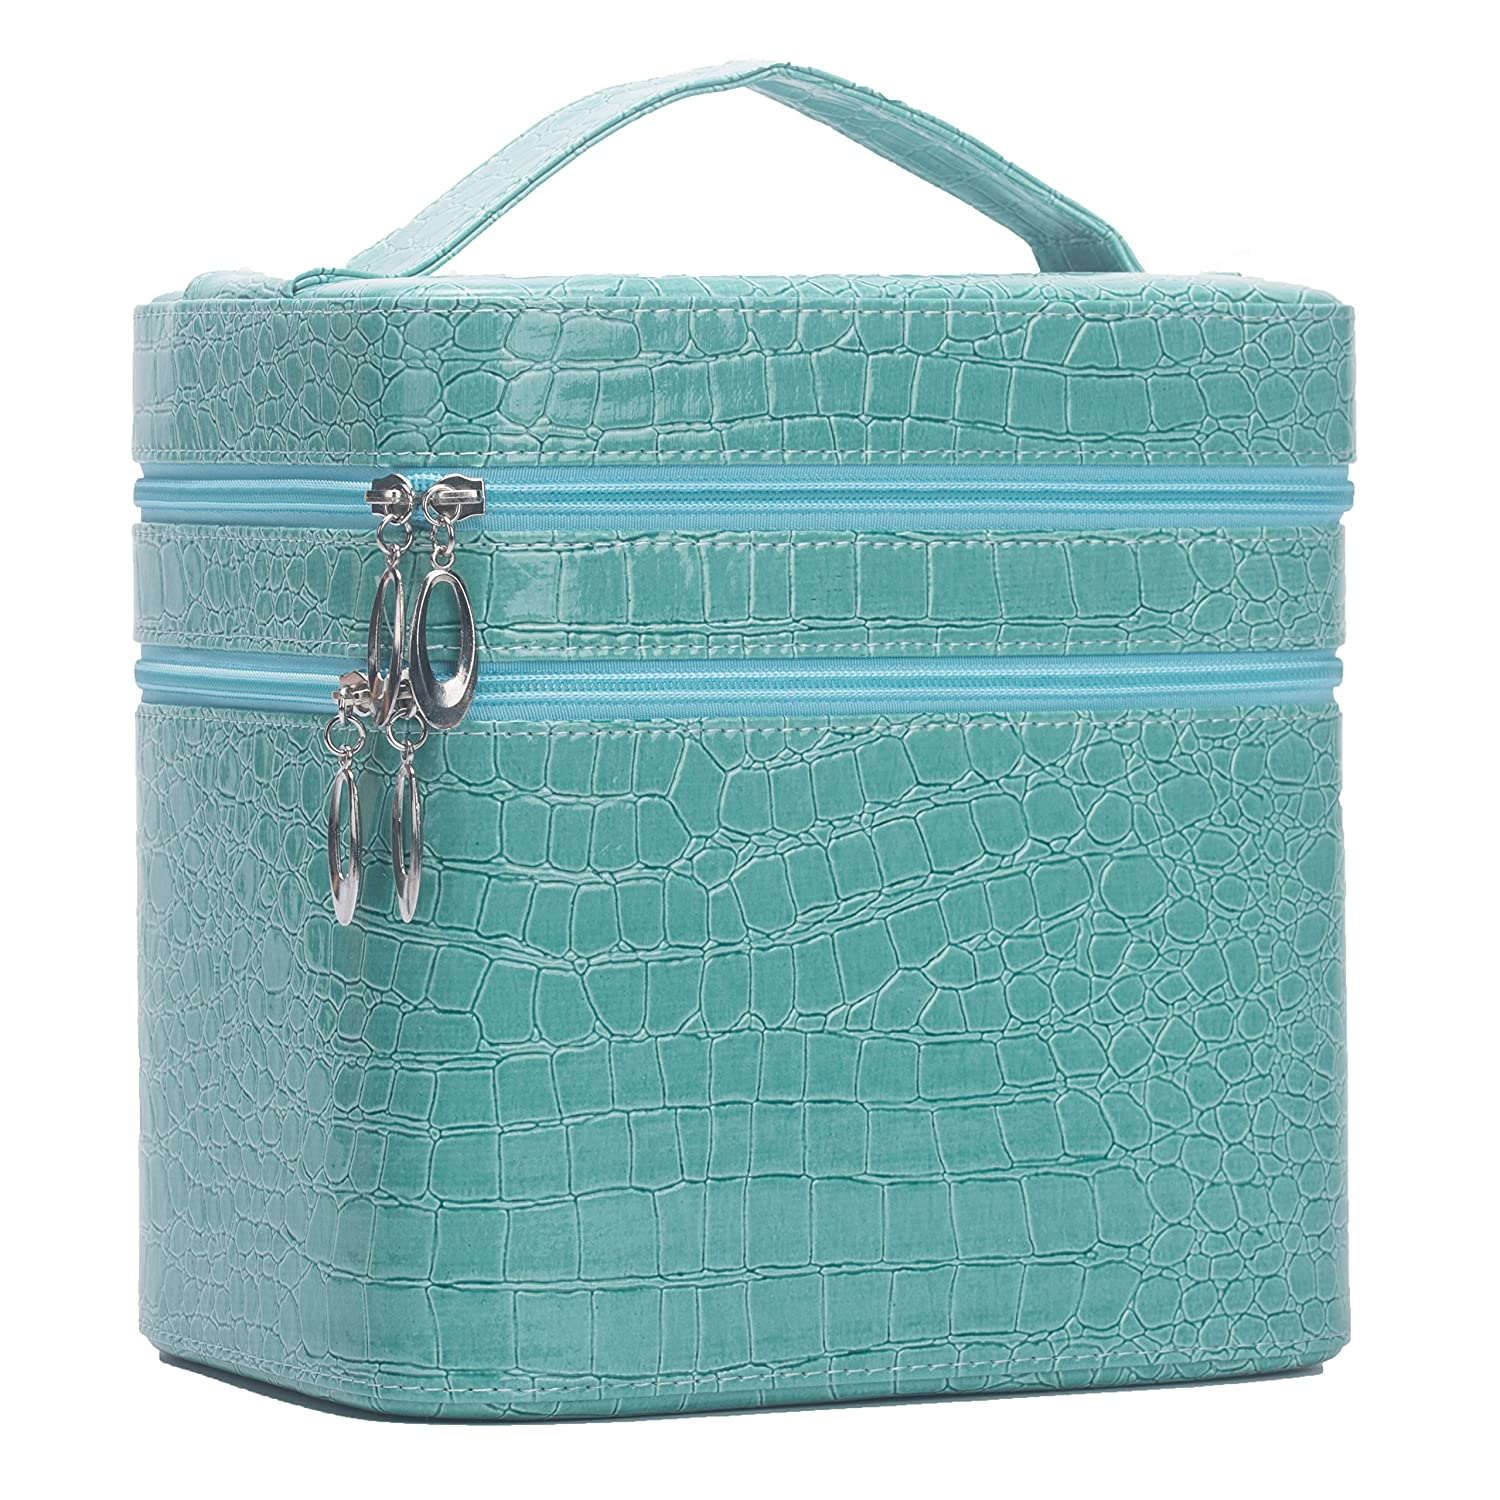 HOYOFO Mirror Double Layer Makeup Case Storage Bags Cases Set Cosmetic Bag Sky Blue